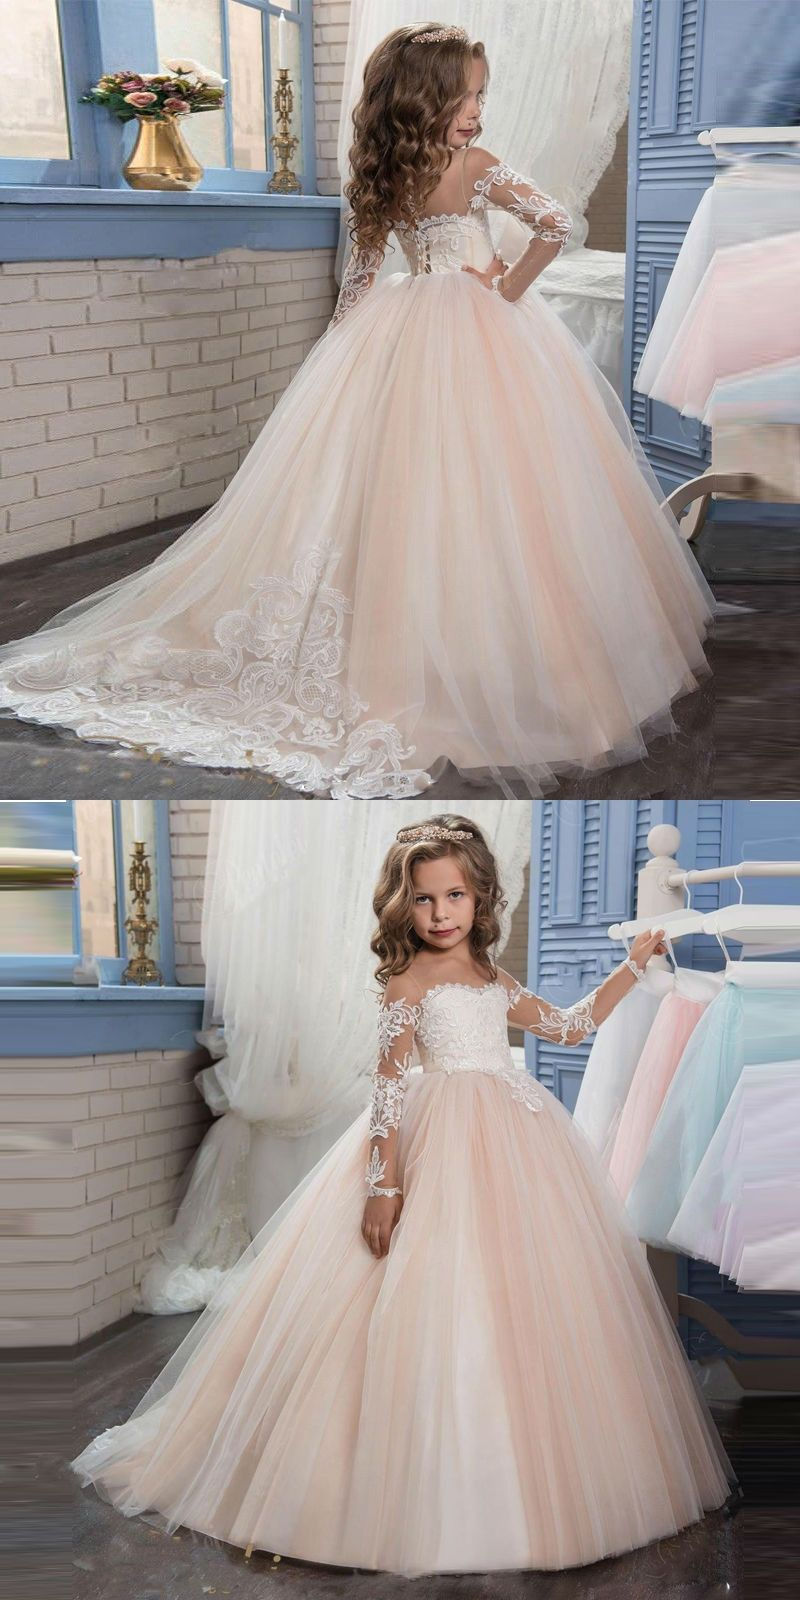 9ddc0131c28 2017 Lowime Champagne First Communion Dresses For Girls Lace Ball Gown  Flower Girl Dress Kids Evening